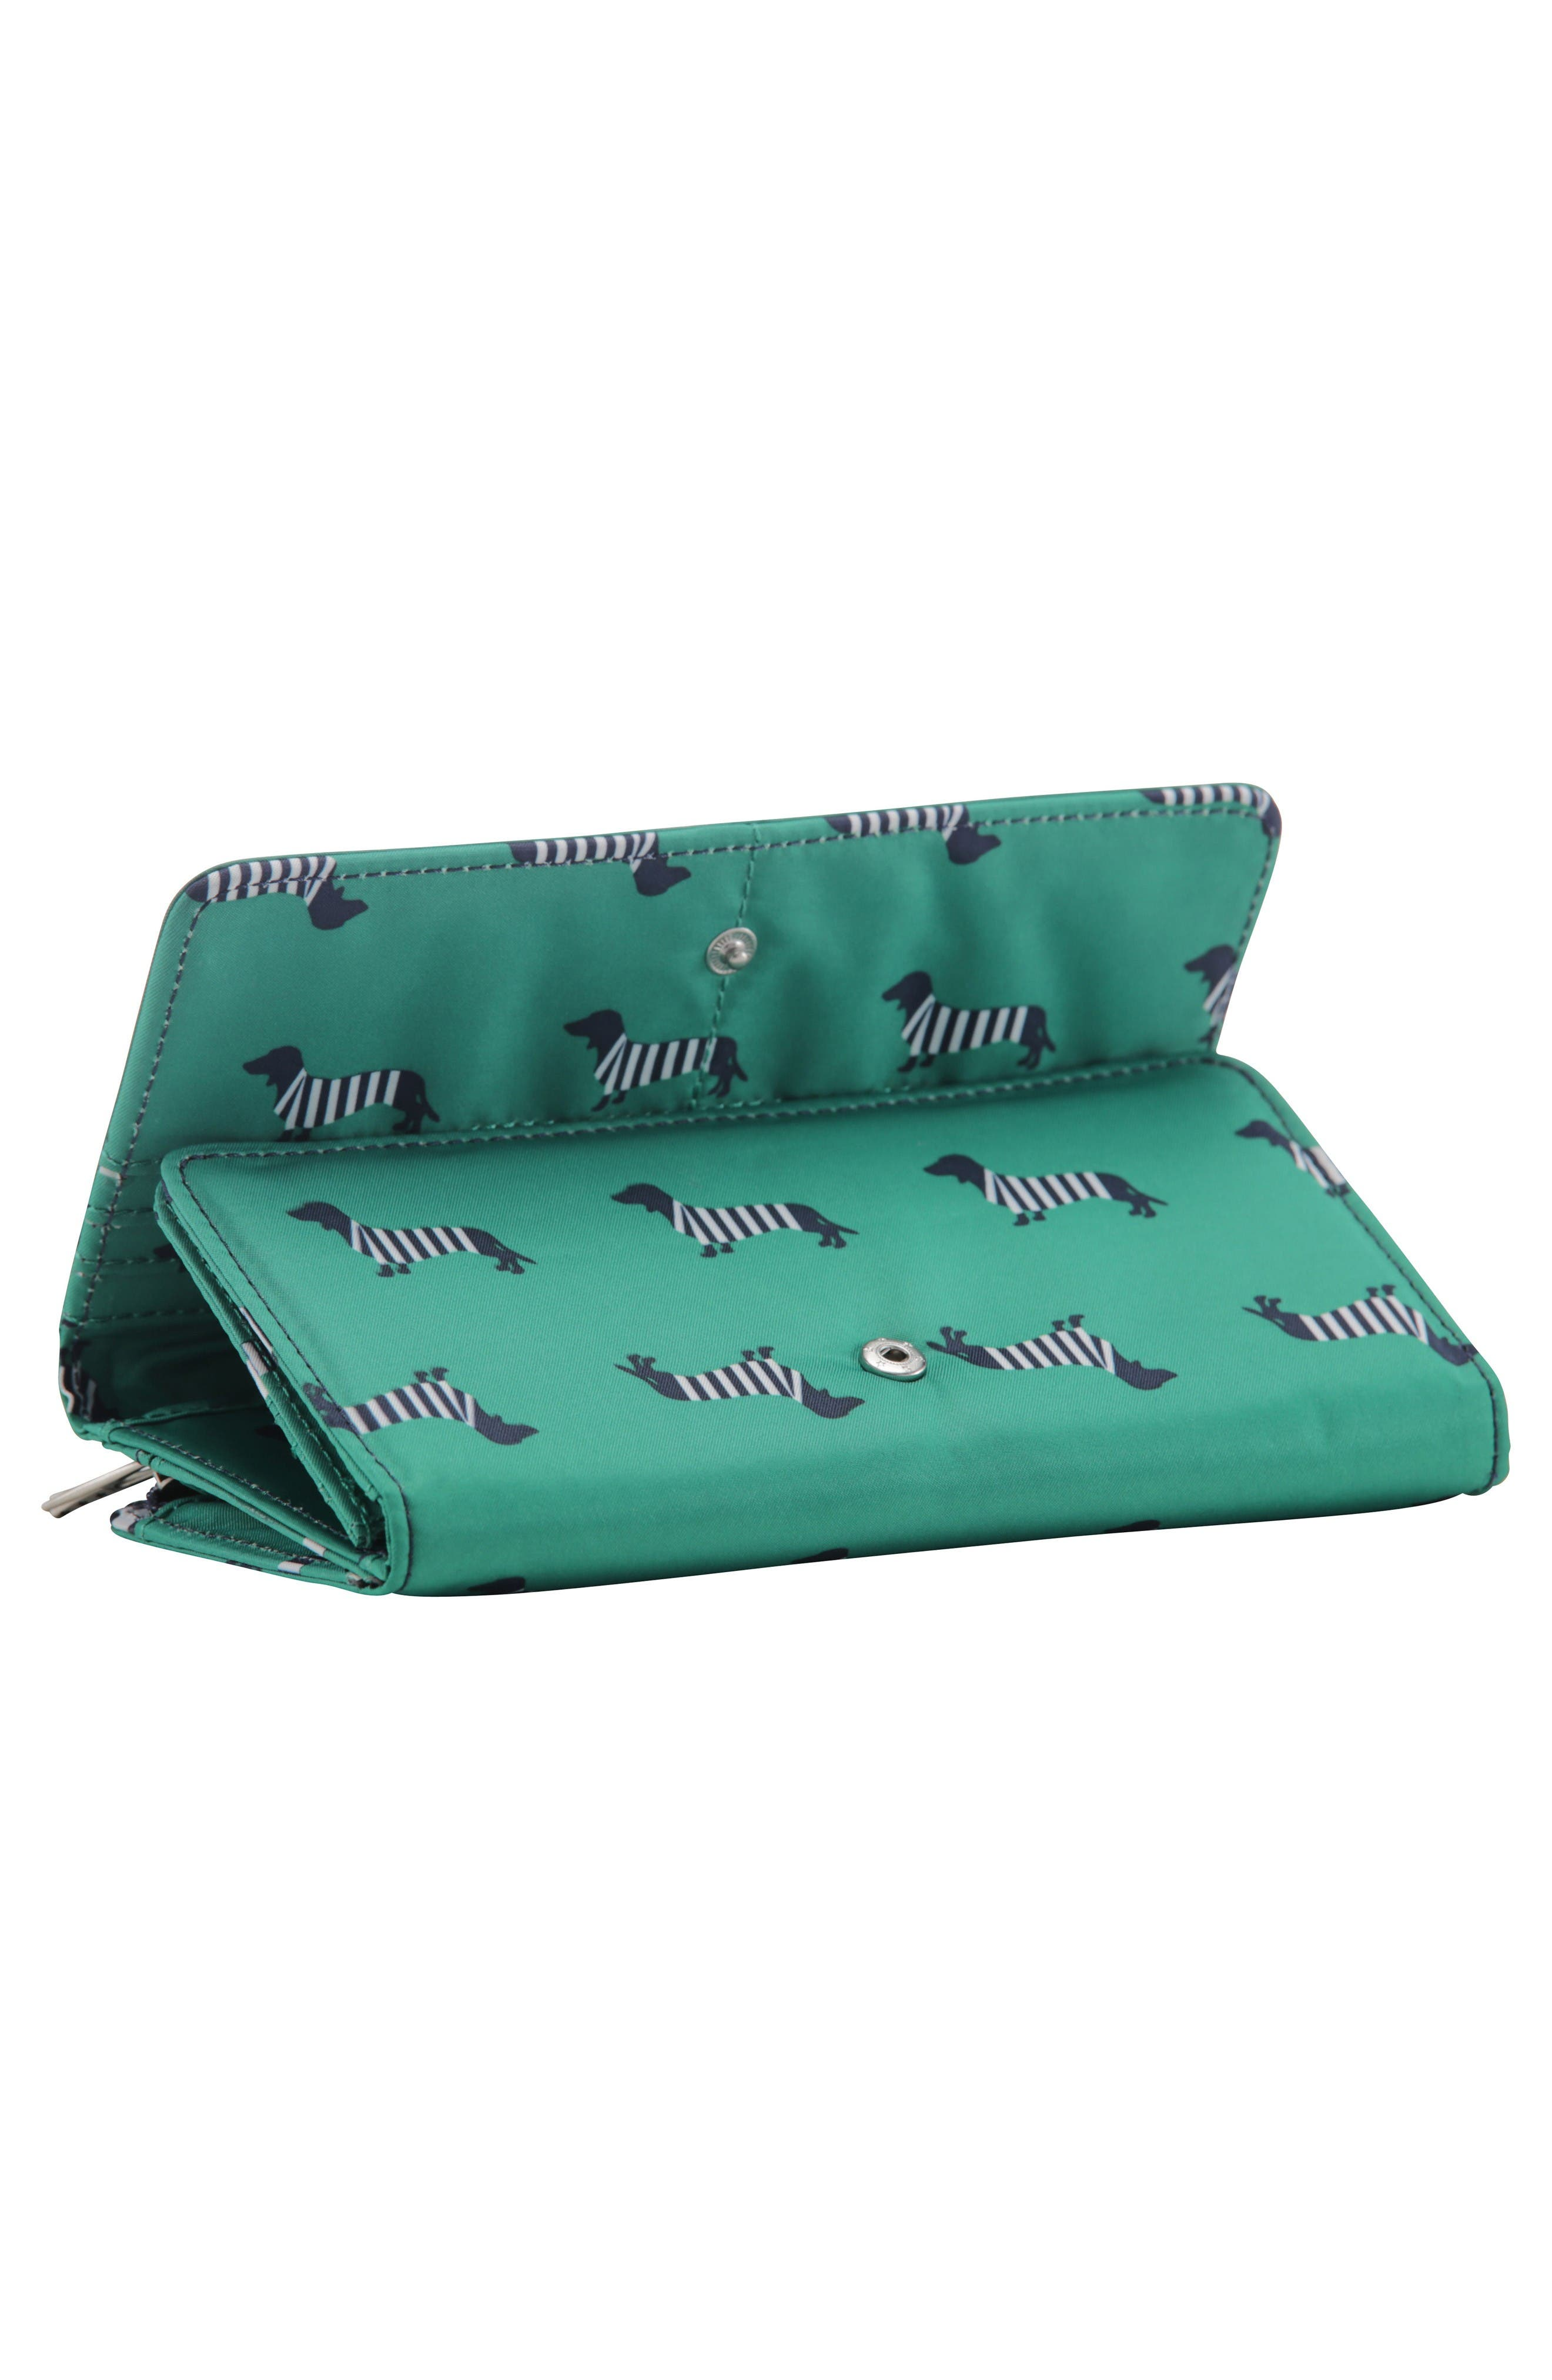 Be Rich - Coastal Collection Trifold Clutch Wallet,                             Alternate thumbnail 3, color,                             Coney Island